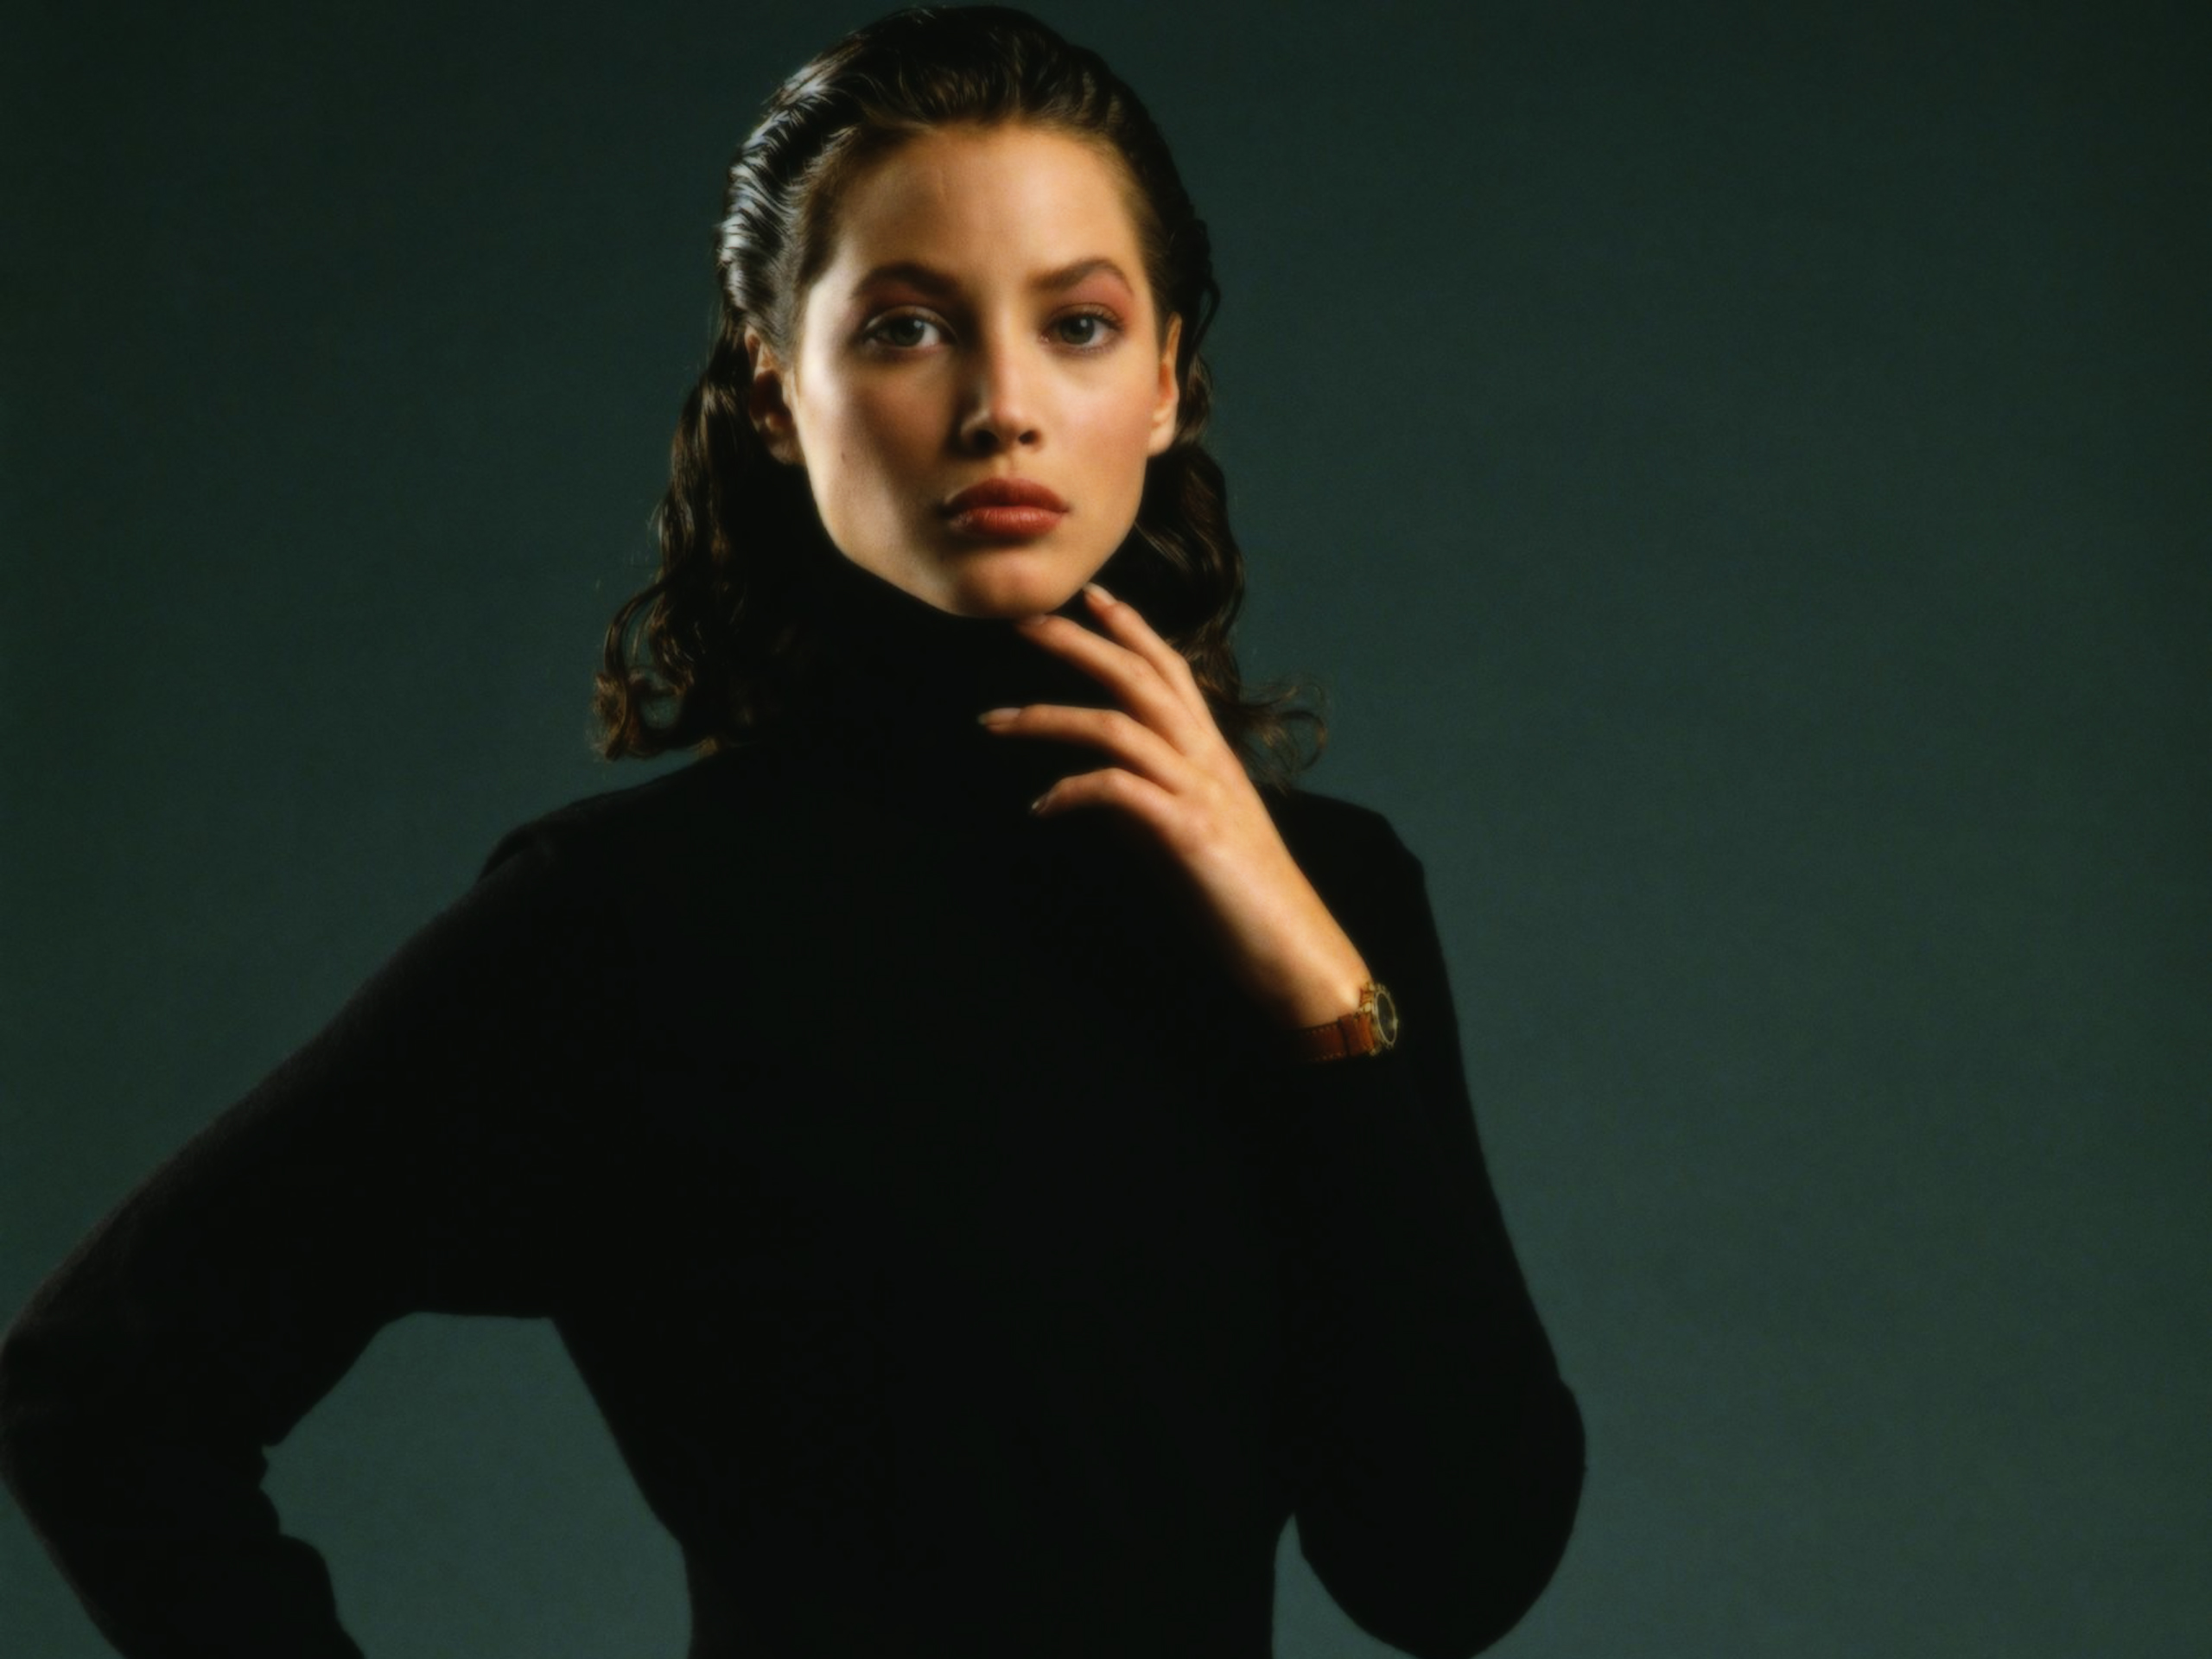 christy turlington computer wallpaper 59535